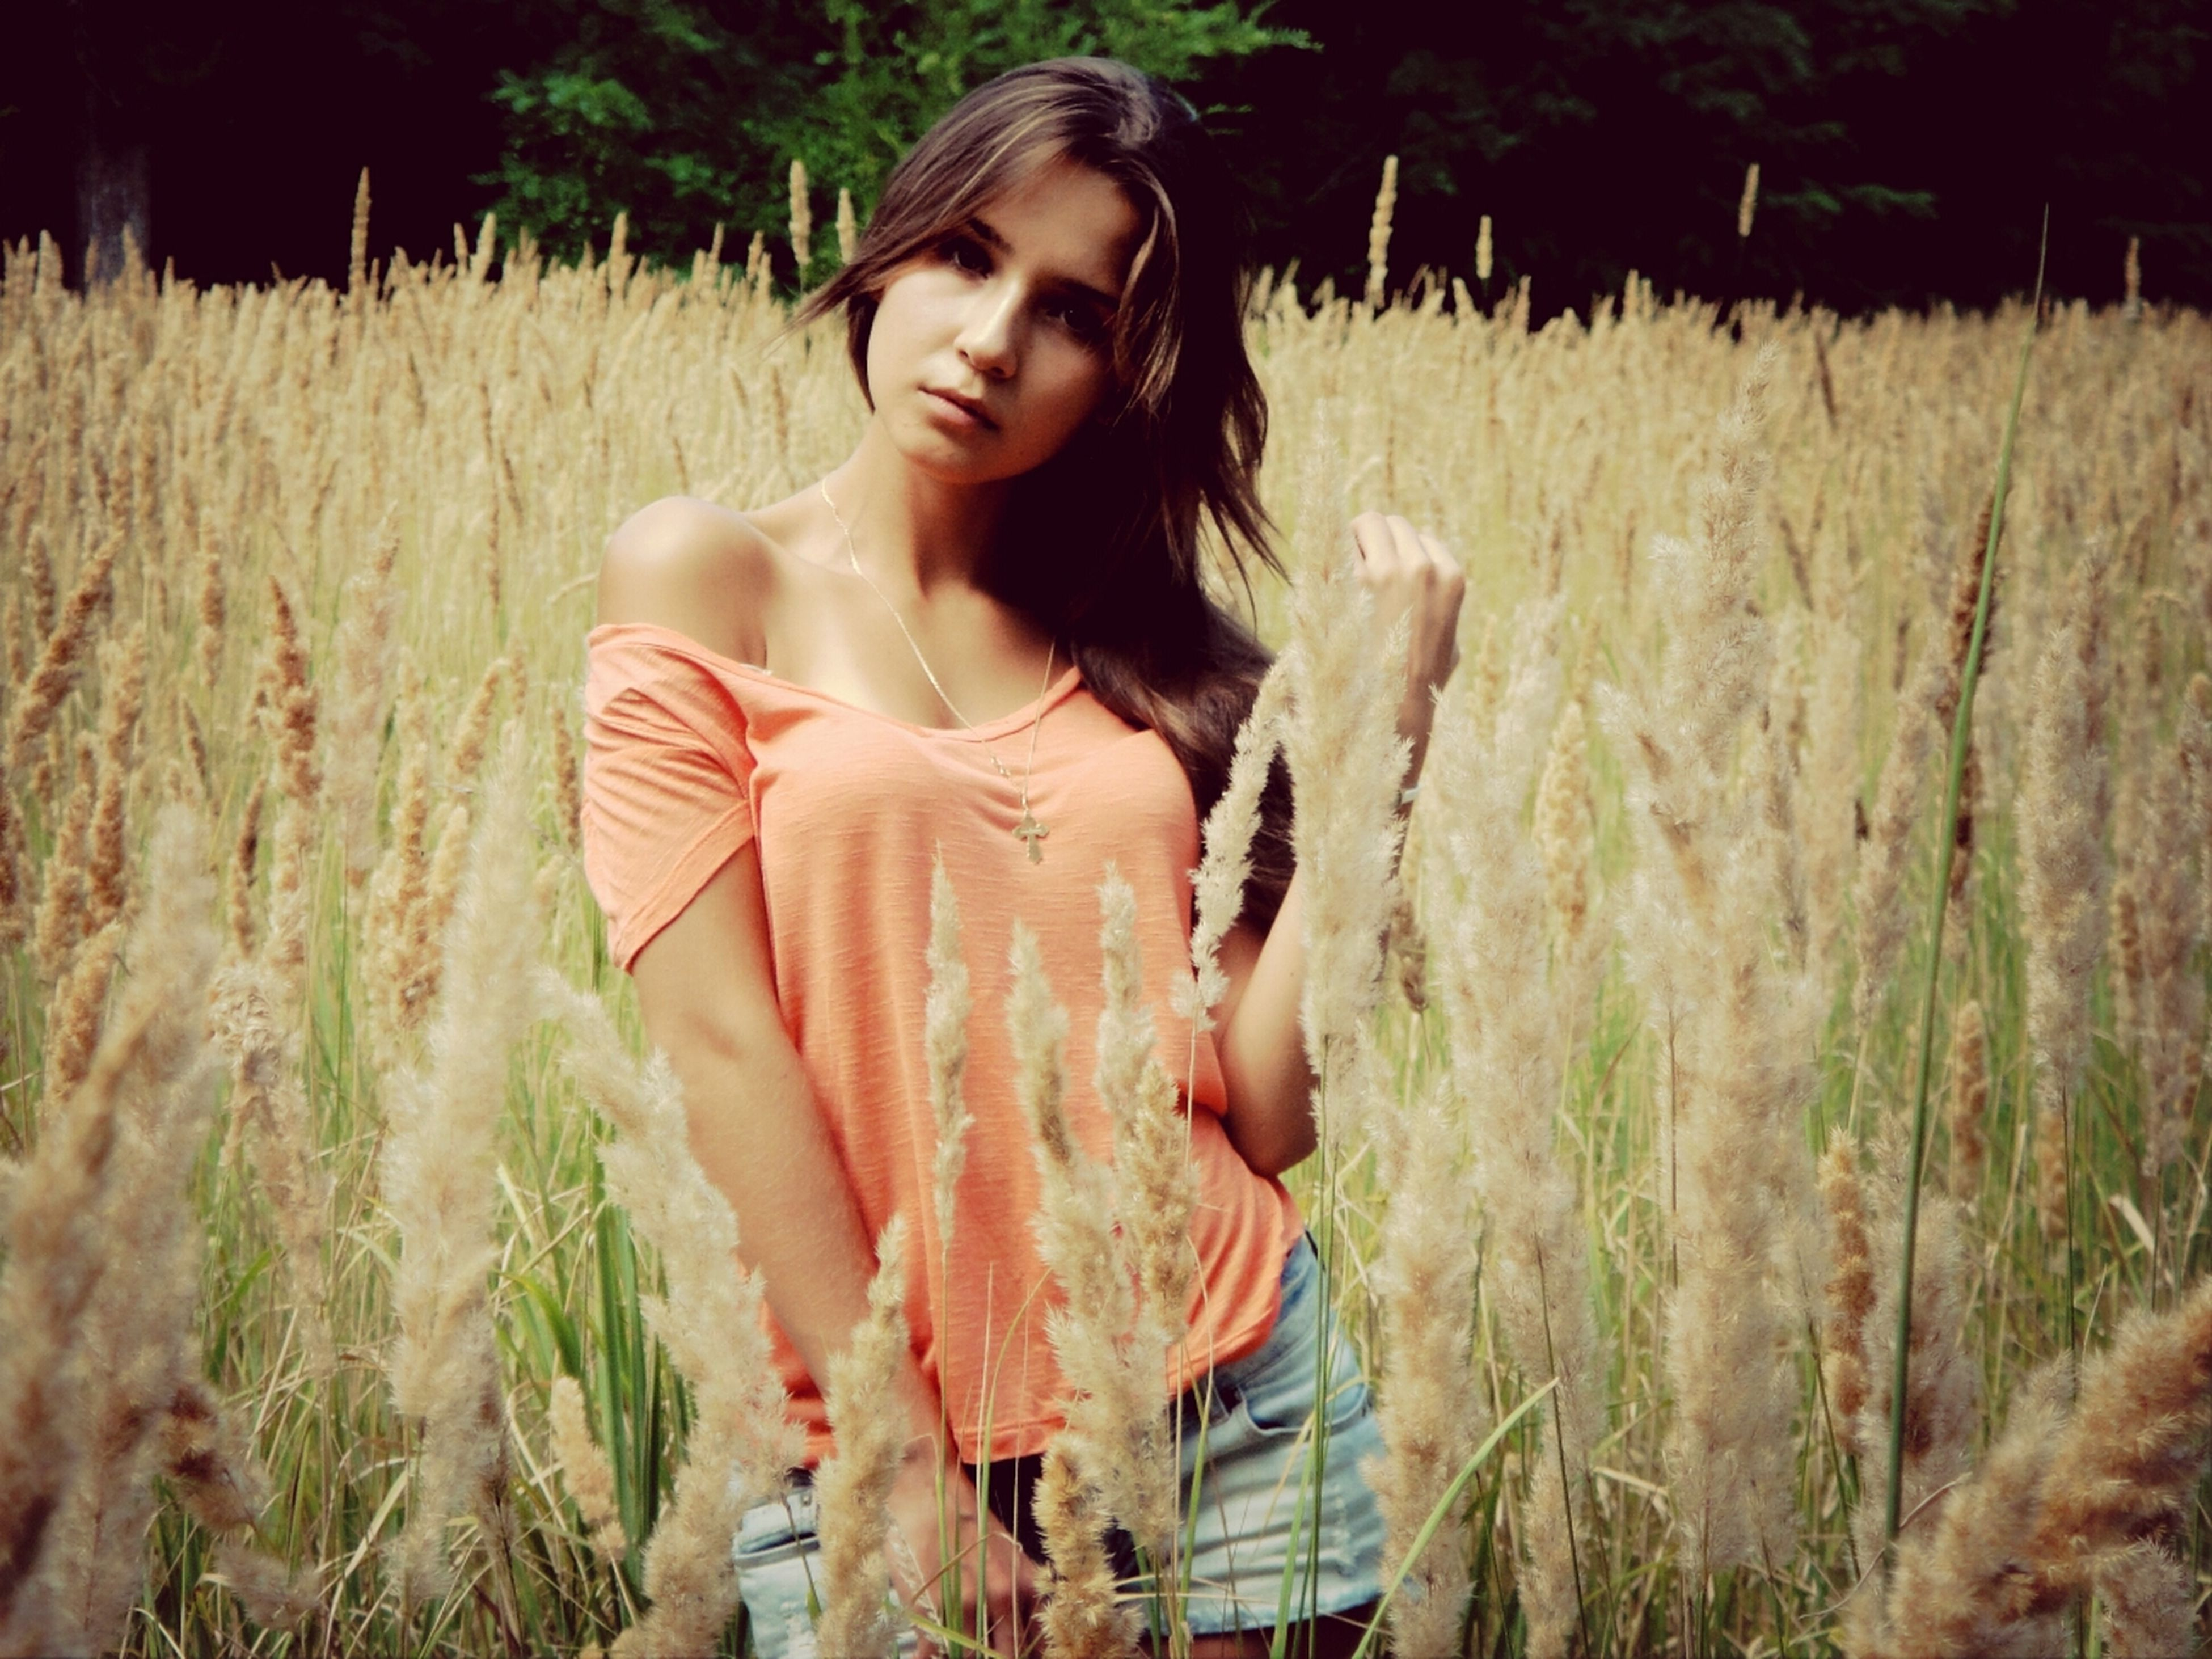 young adult, person, young women, lifestyles, casual clothing, leisure activity, three quarter length, front view, holding, long hair, field, waist up, standing, grass, portrait, looking at camera, full length